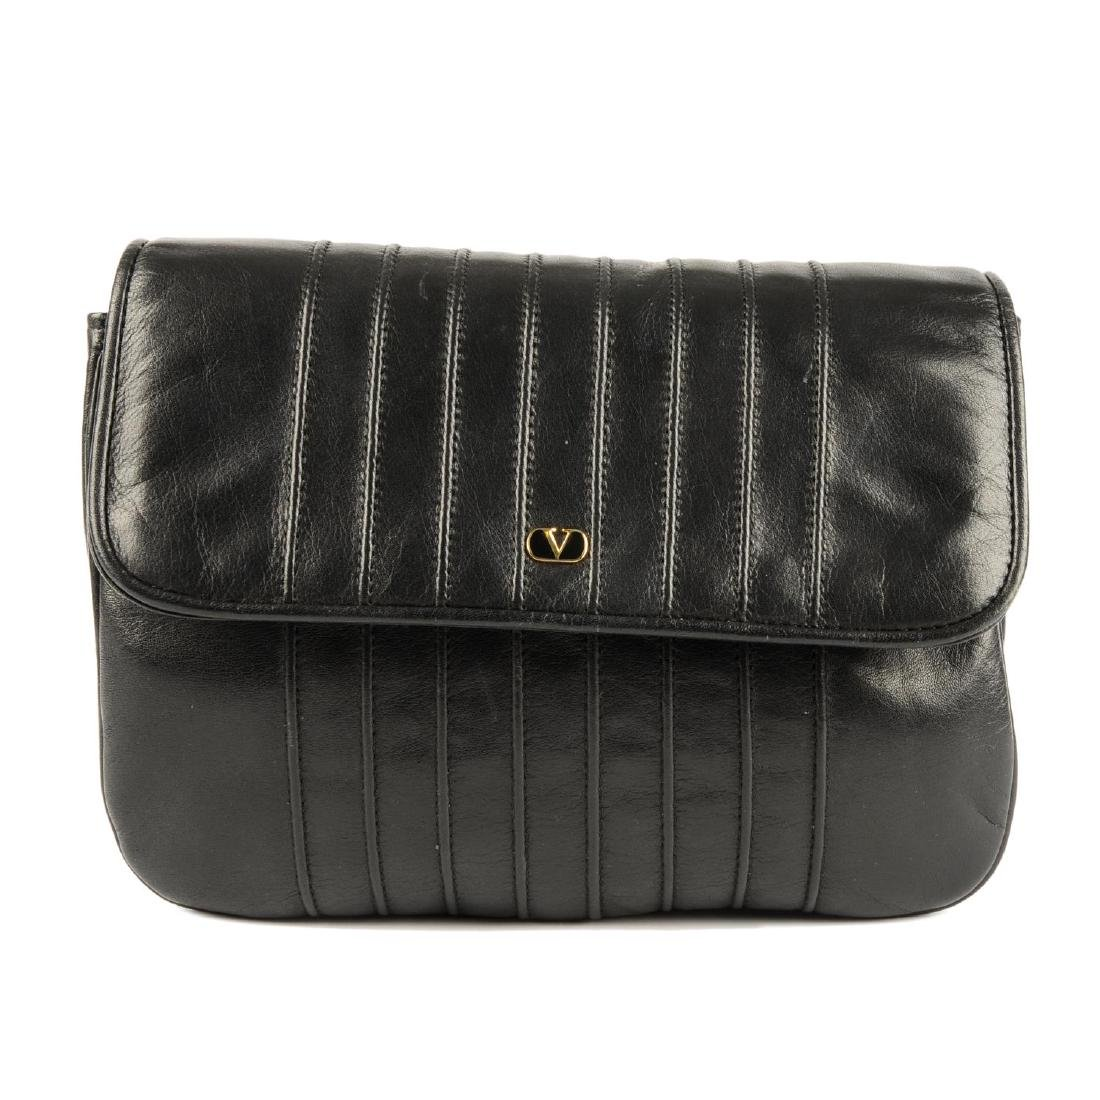 VALENTINO - a vintage leather crossbody handbag.